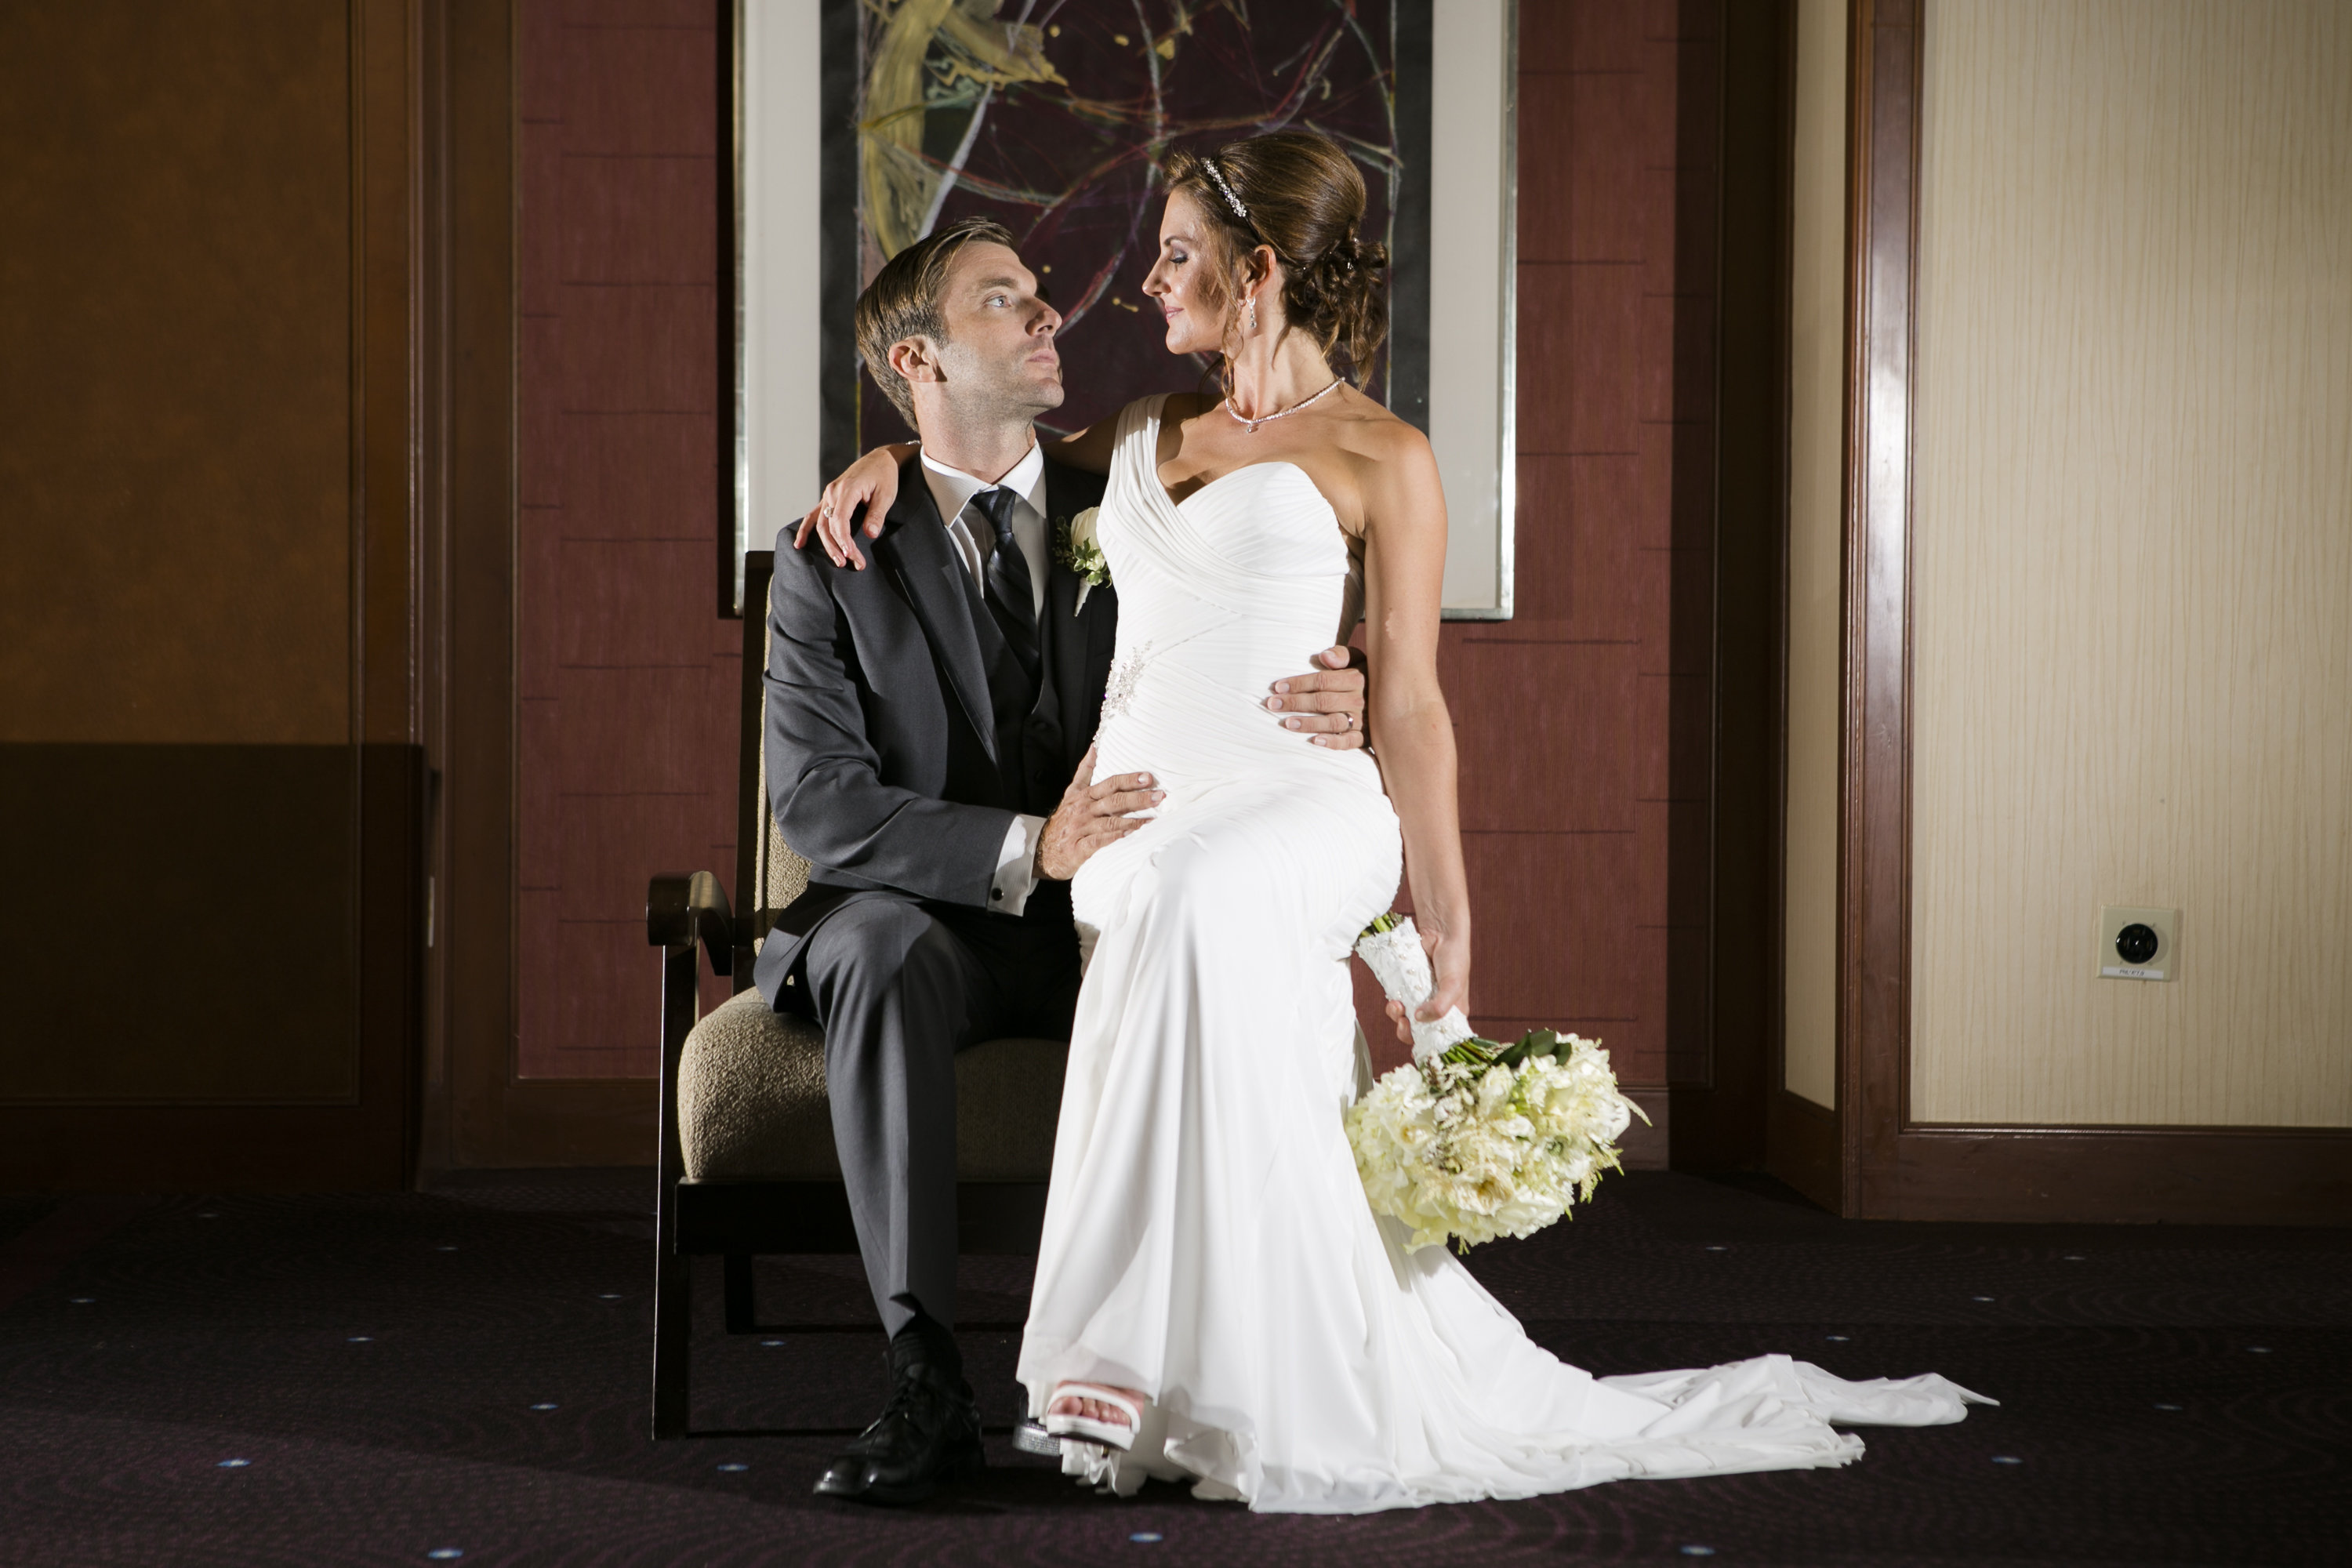 Stephanie Colby wedding Hilton La Jolla 9 27 2014-06 Bride and Groom-0043